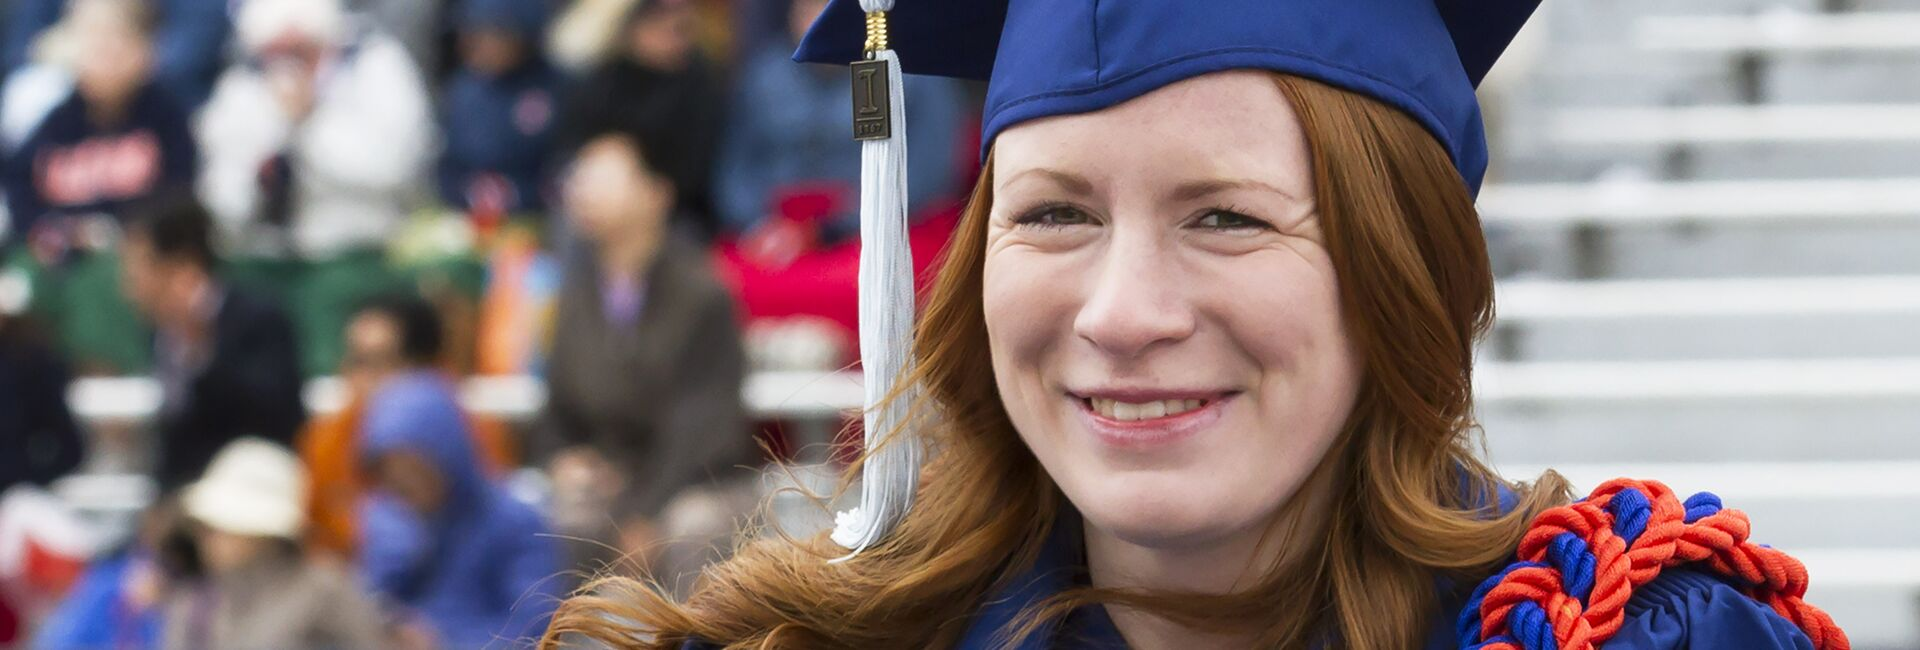 A student wearing a cap and gown smiles